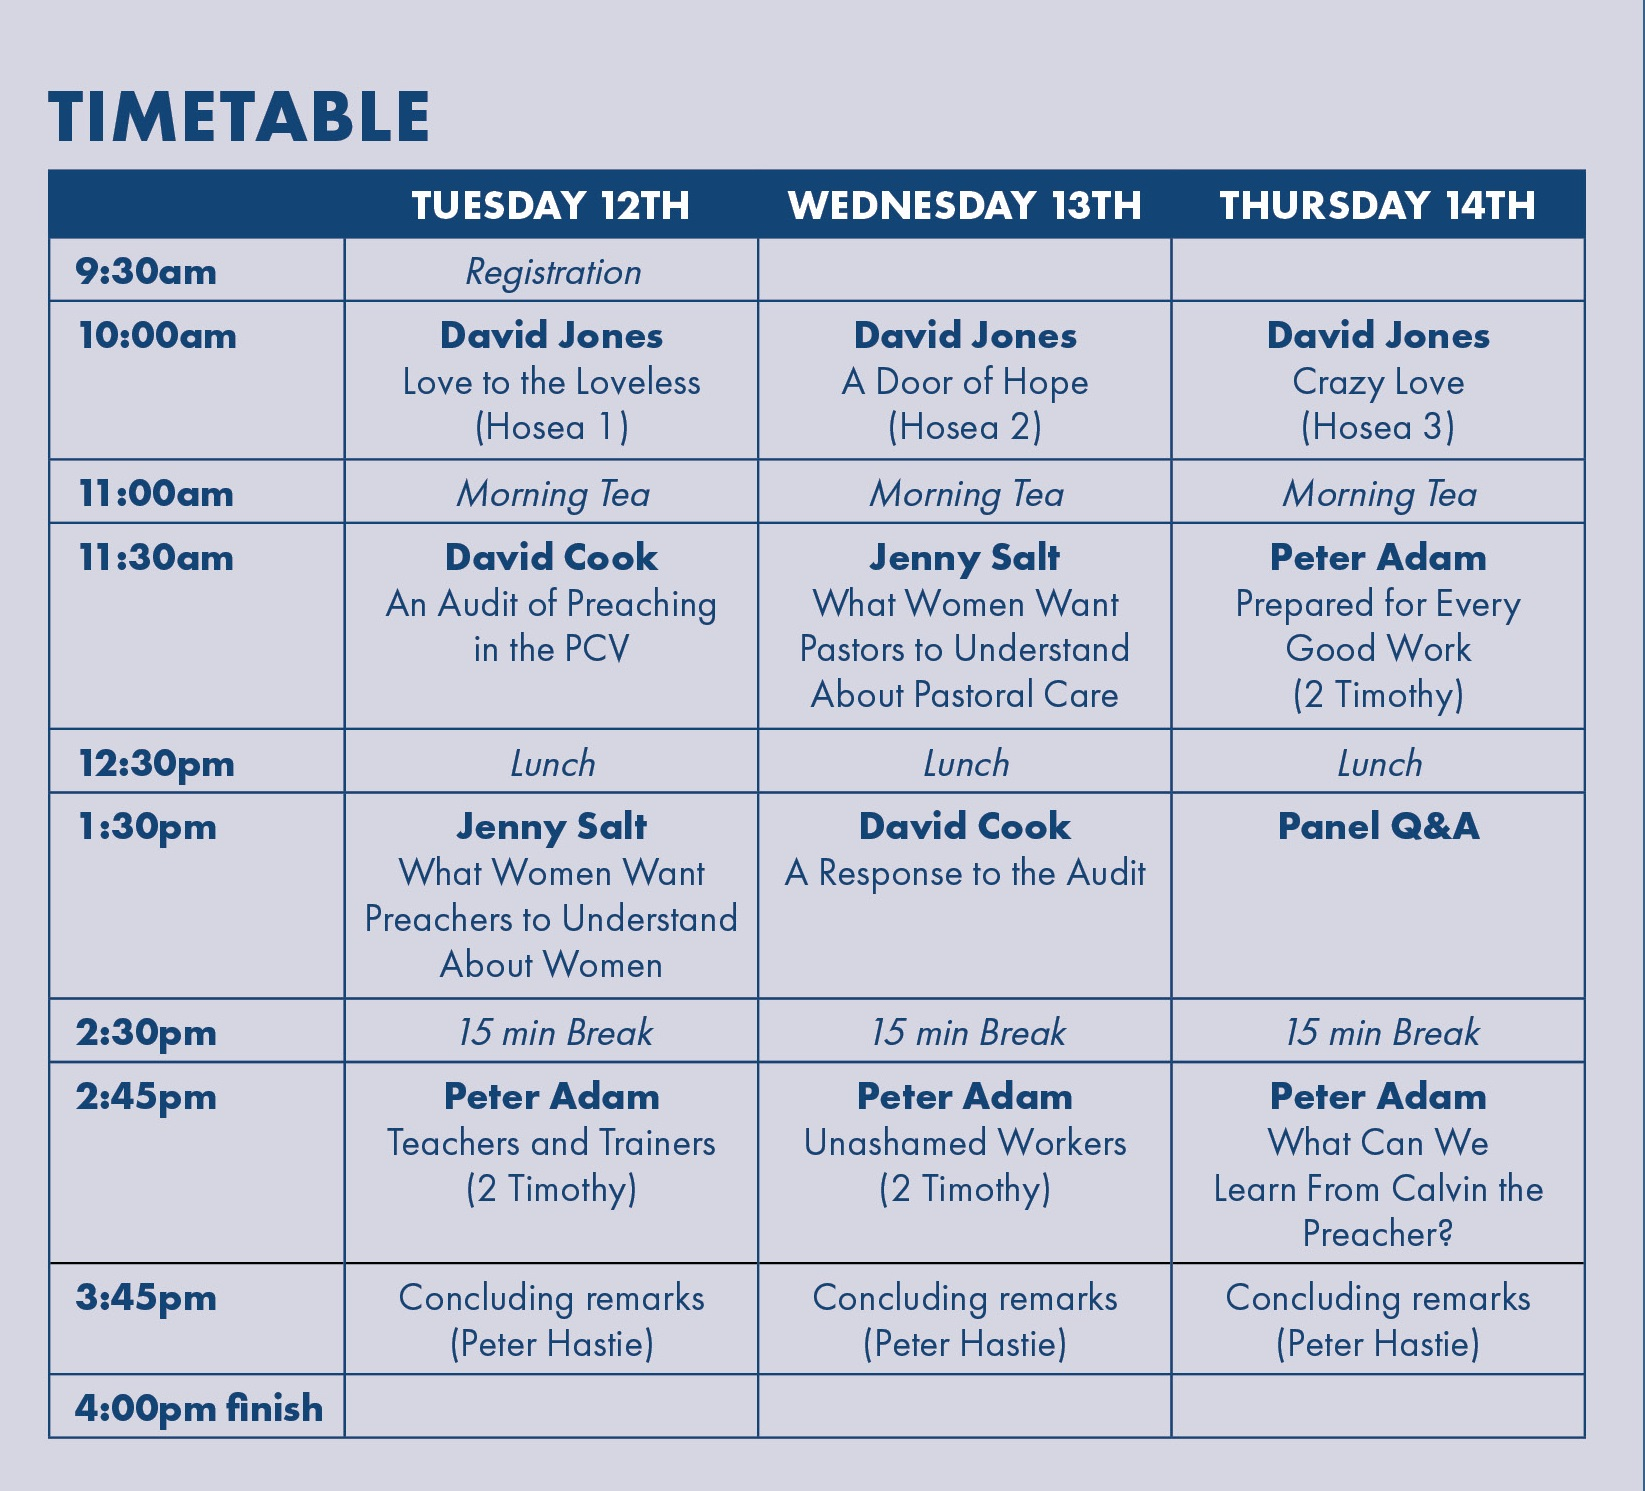 Having trouble viewing the timetable? Download    pdf here